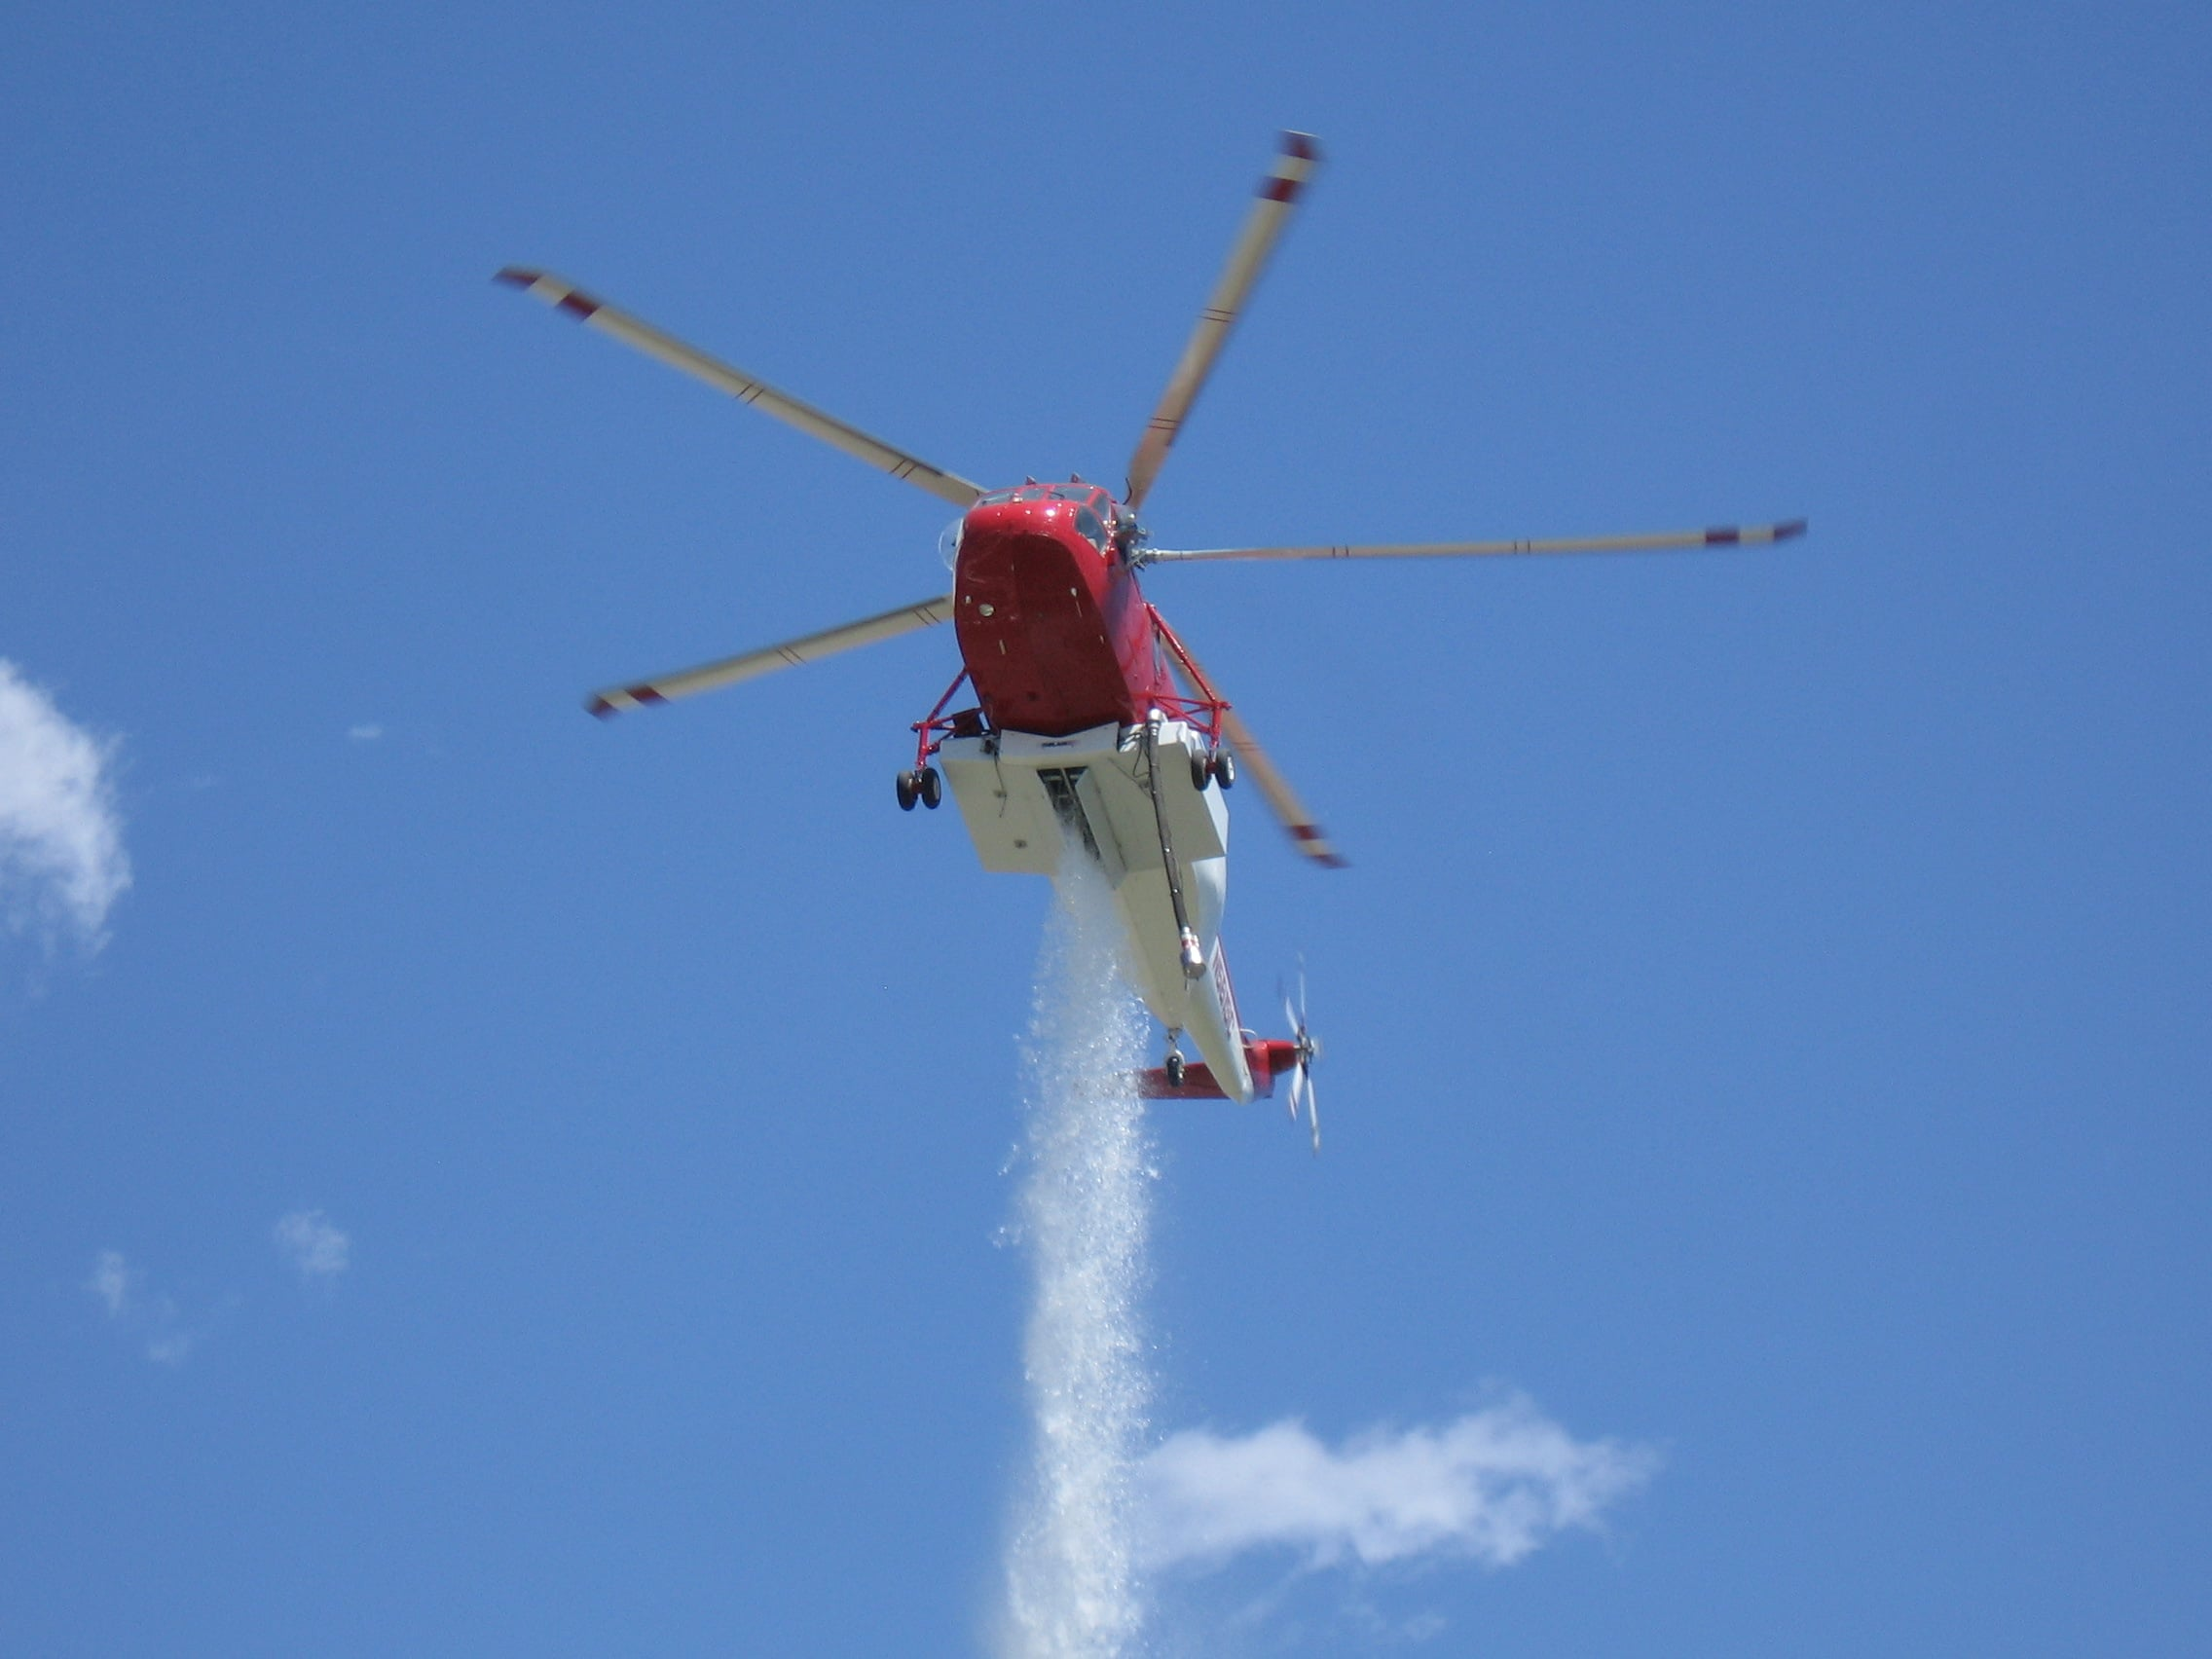 Billings Flying Service Putting Water Tanks Inside Helicopters to Better Fight Fires